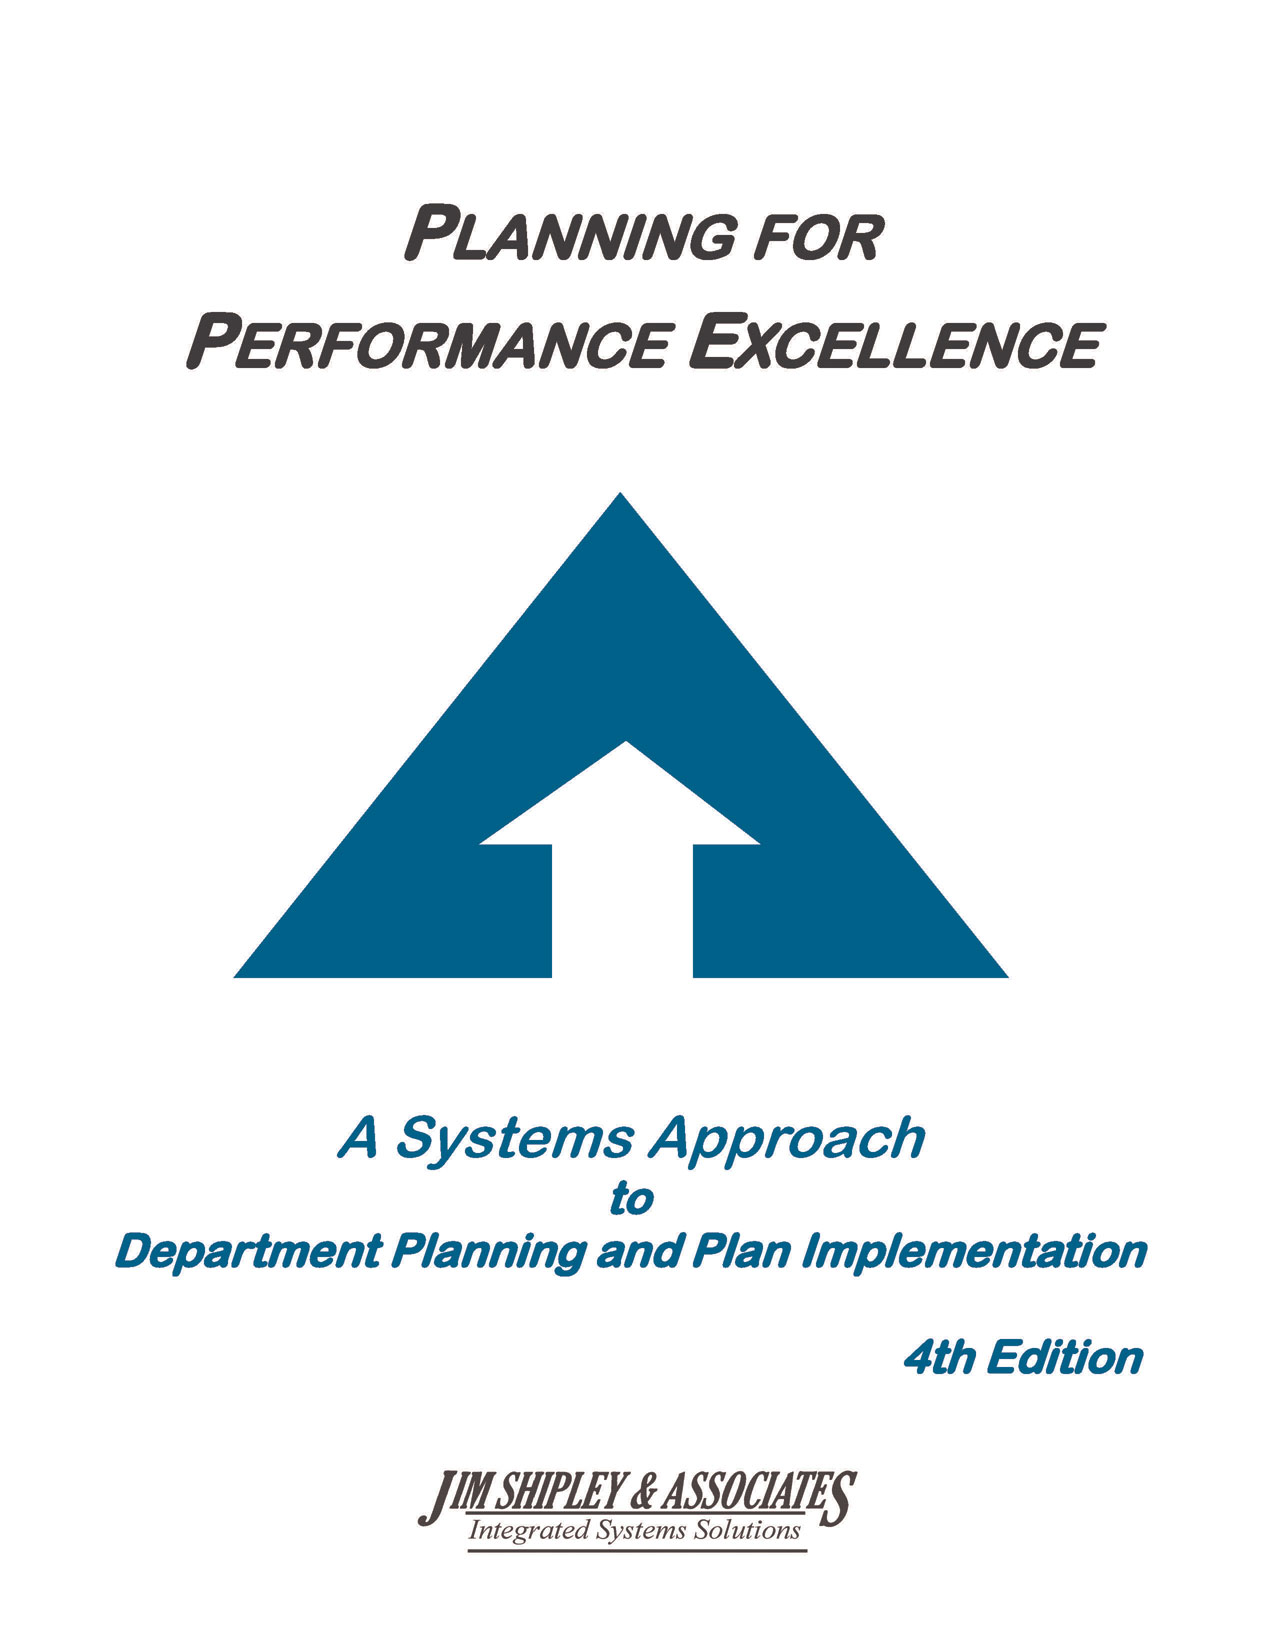 DPI_4 - Department Planning and Plan Implementation 4th Edition Cover Image